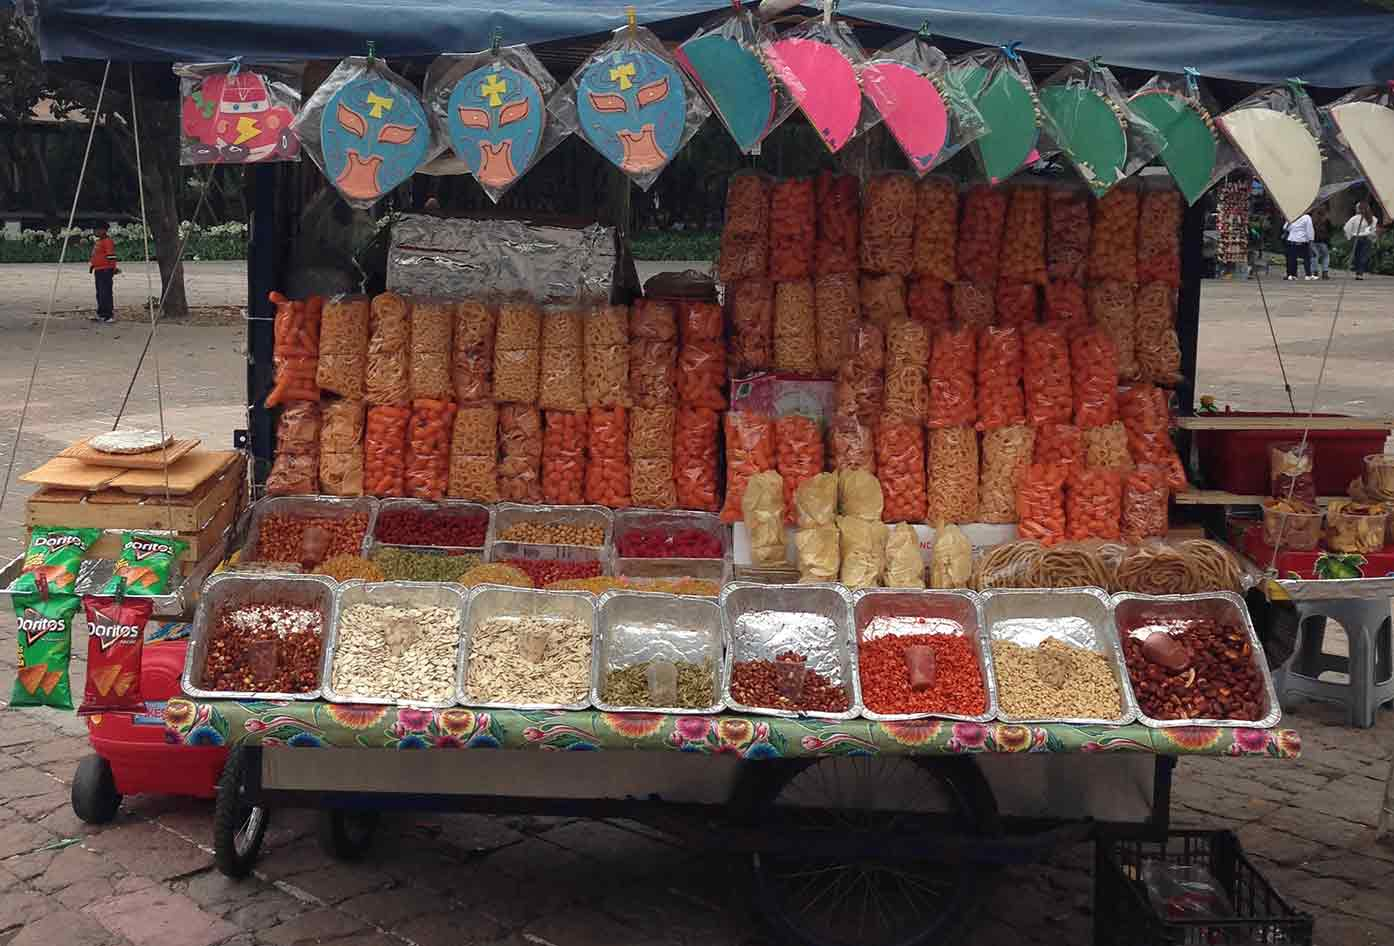 mexico city street food stand